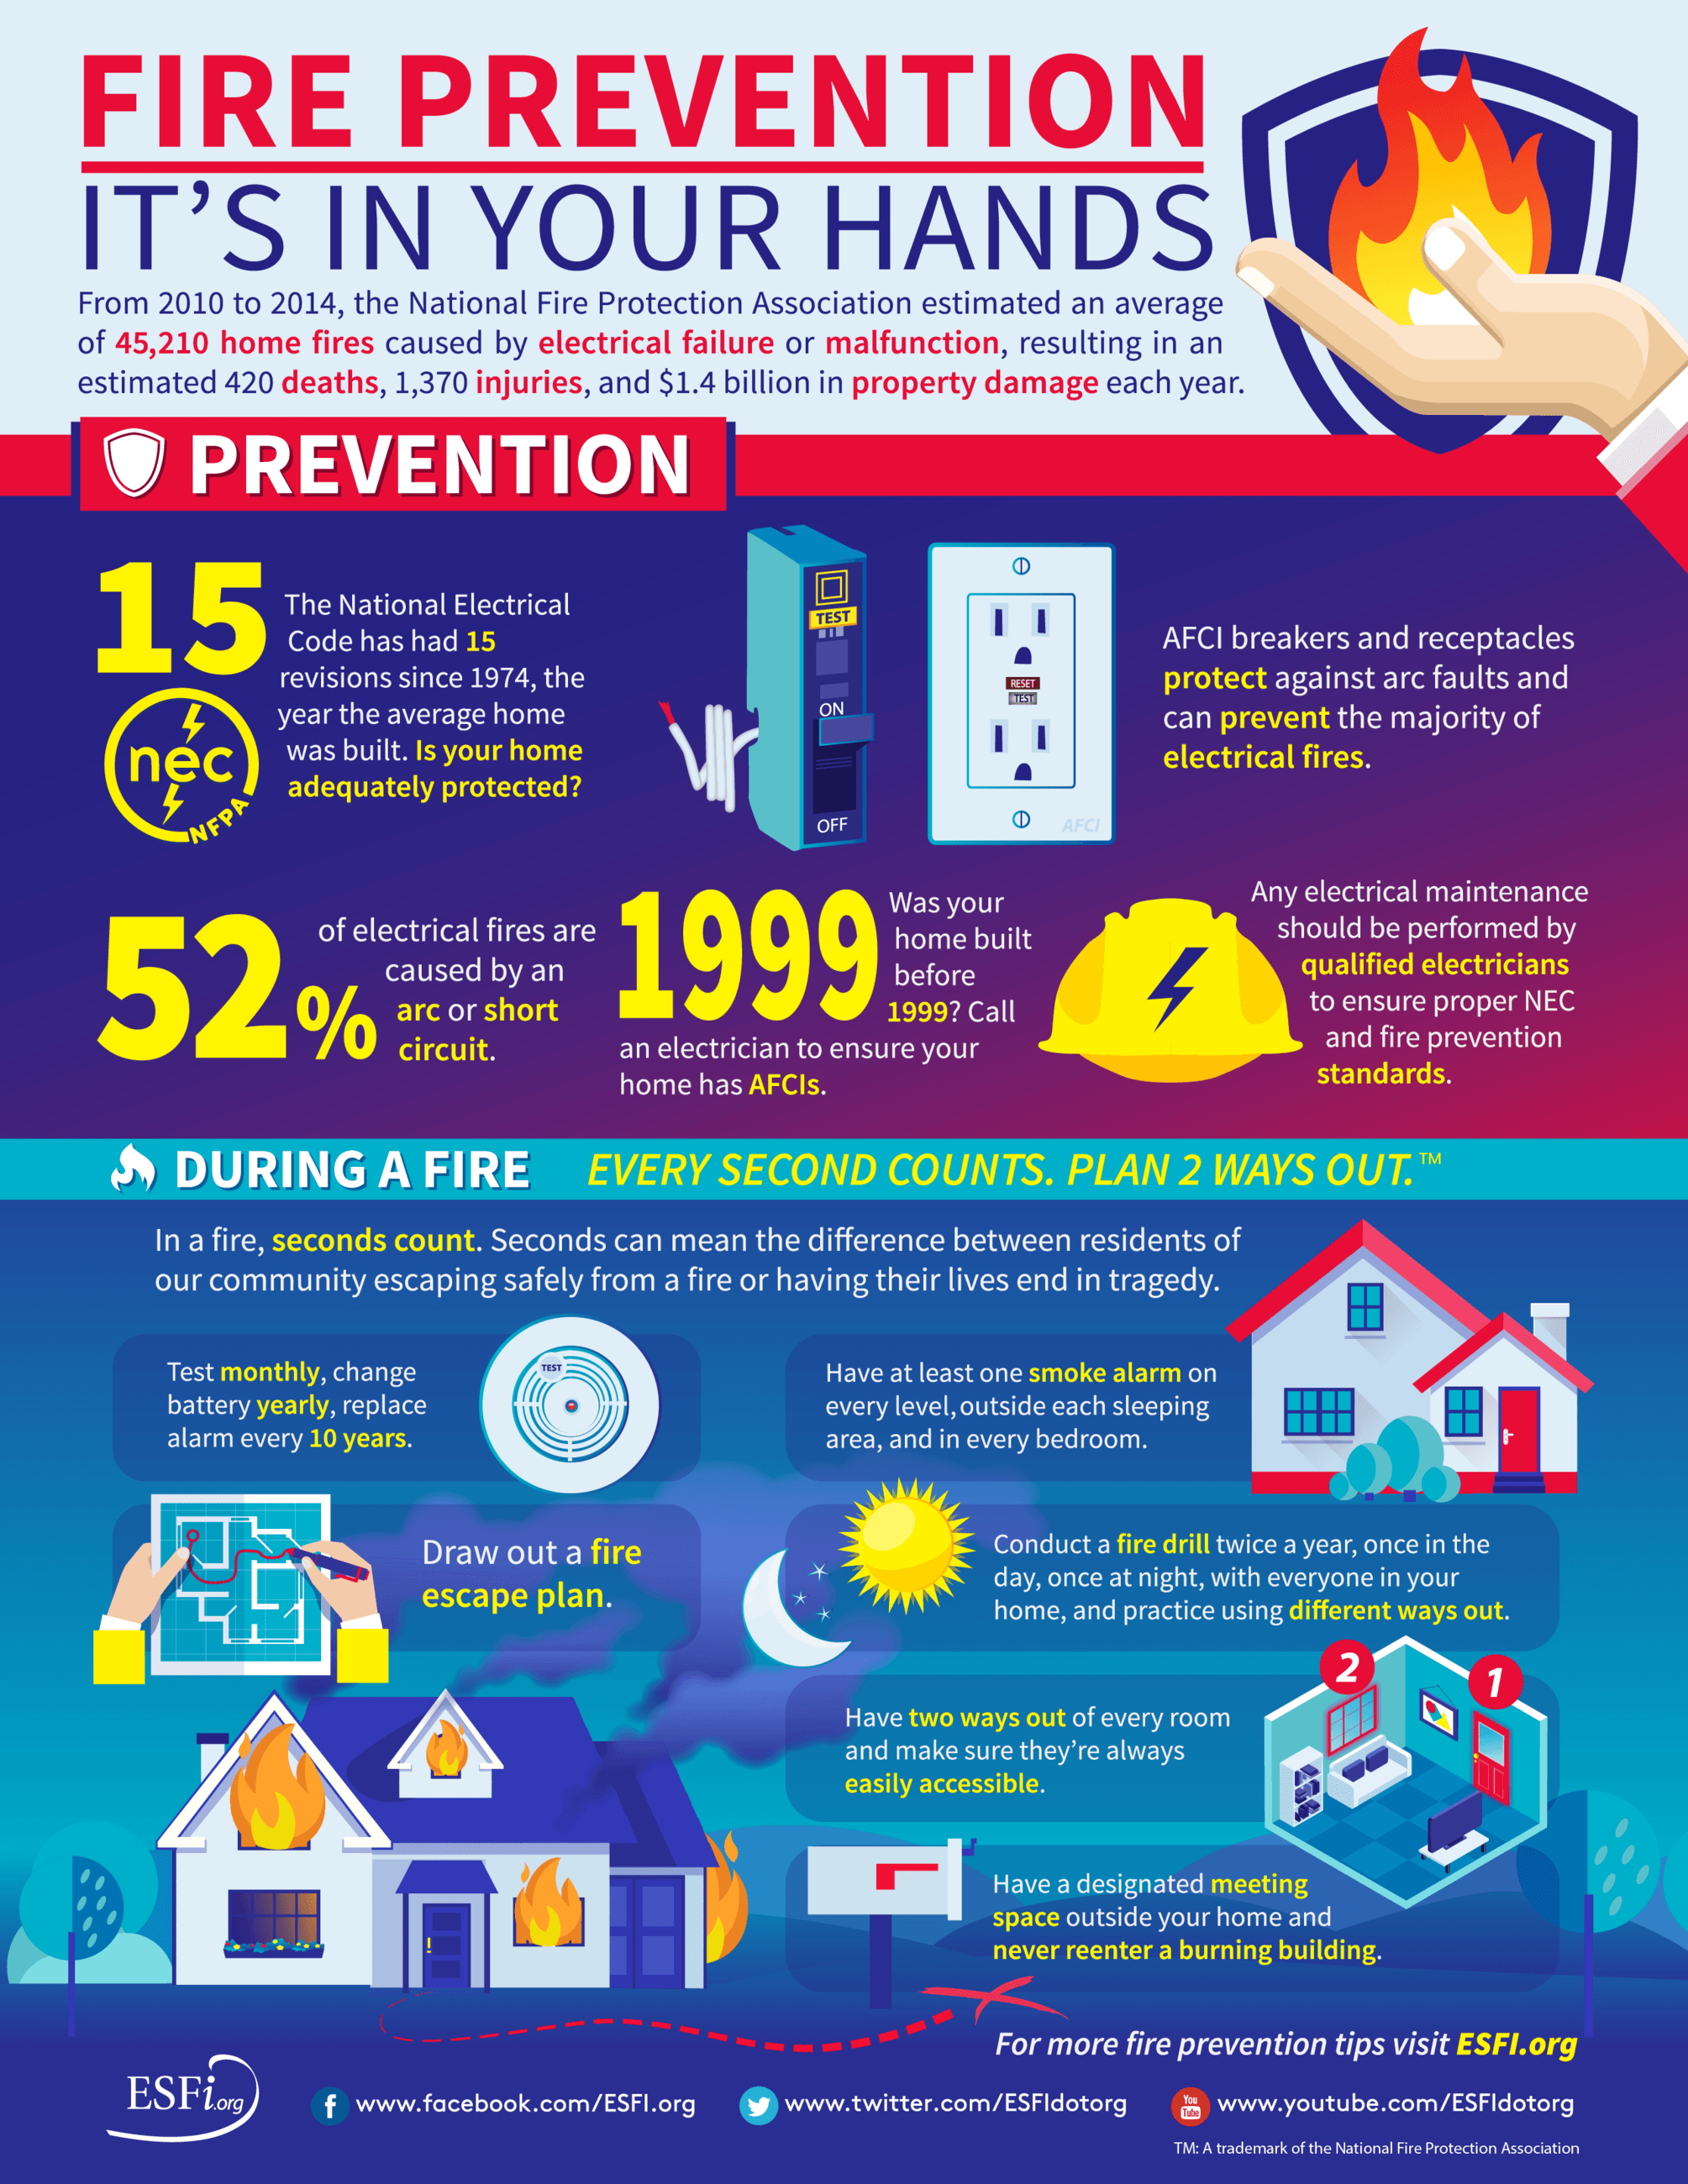 Fire-Prevention-Its-in-your-Hands-2017-2-F830